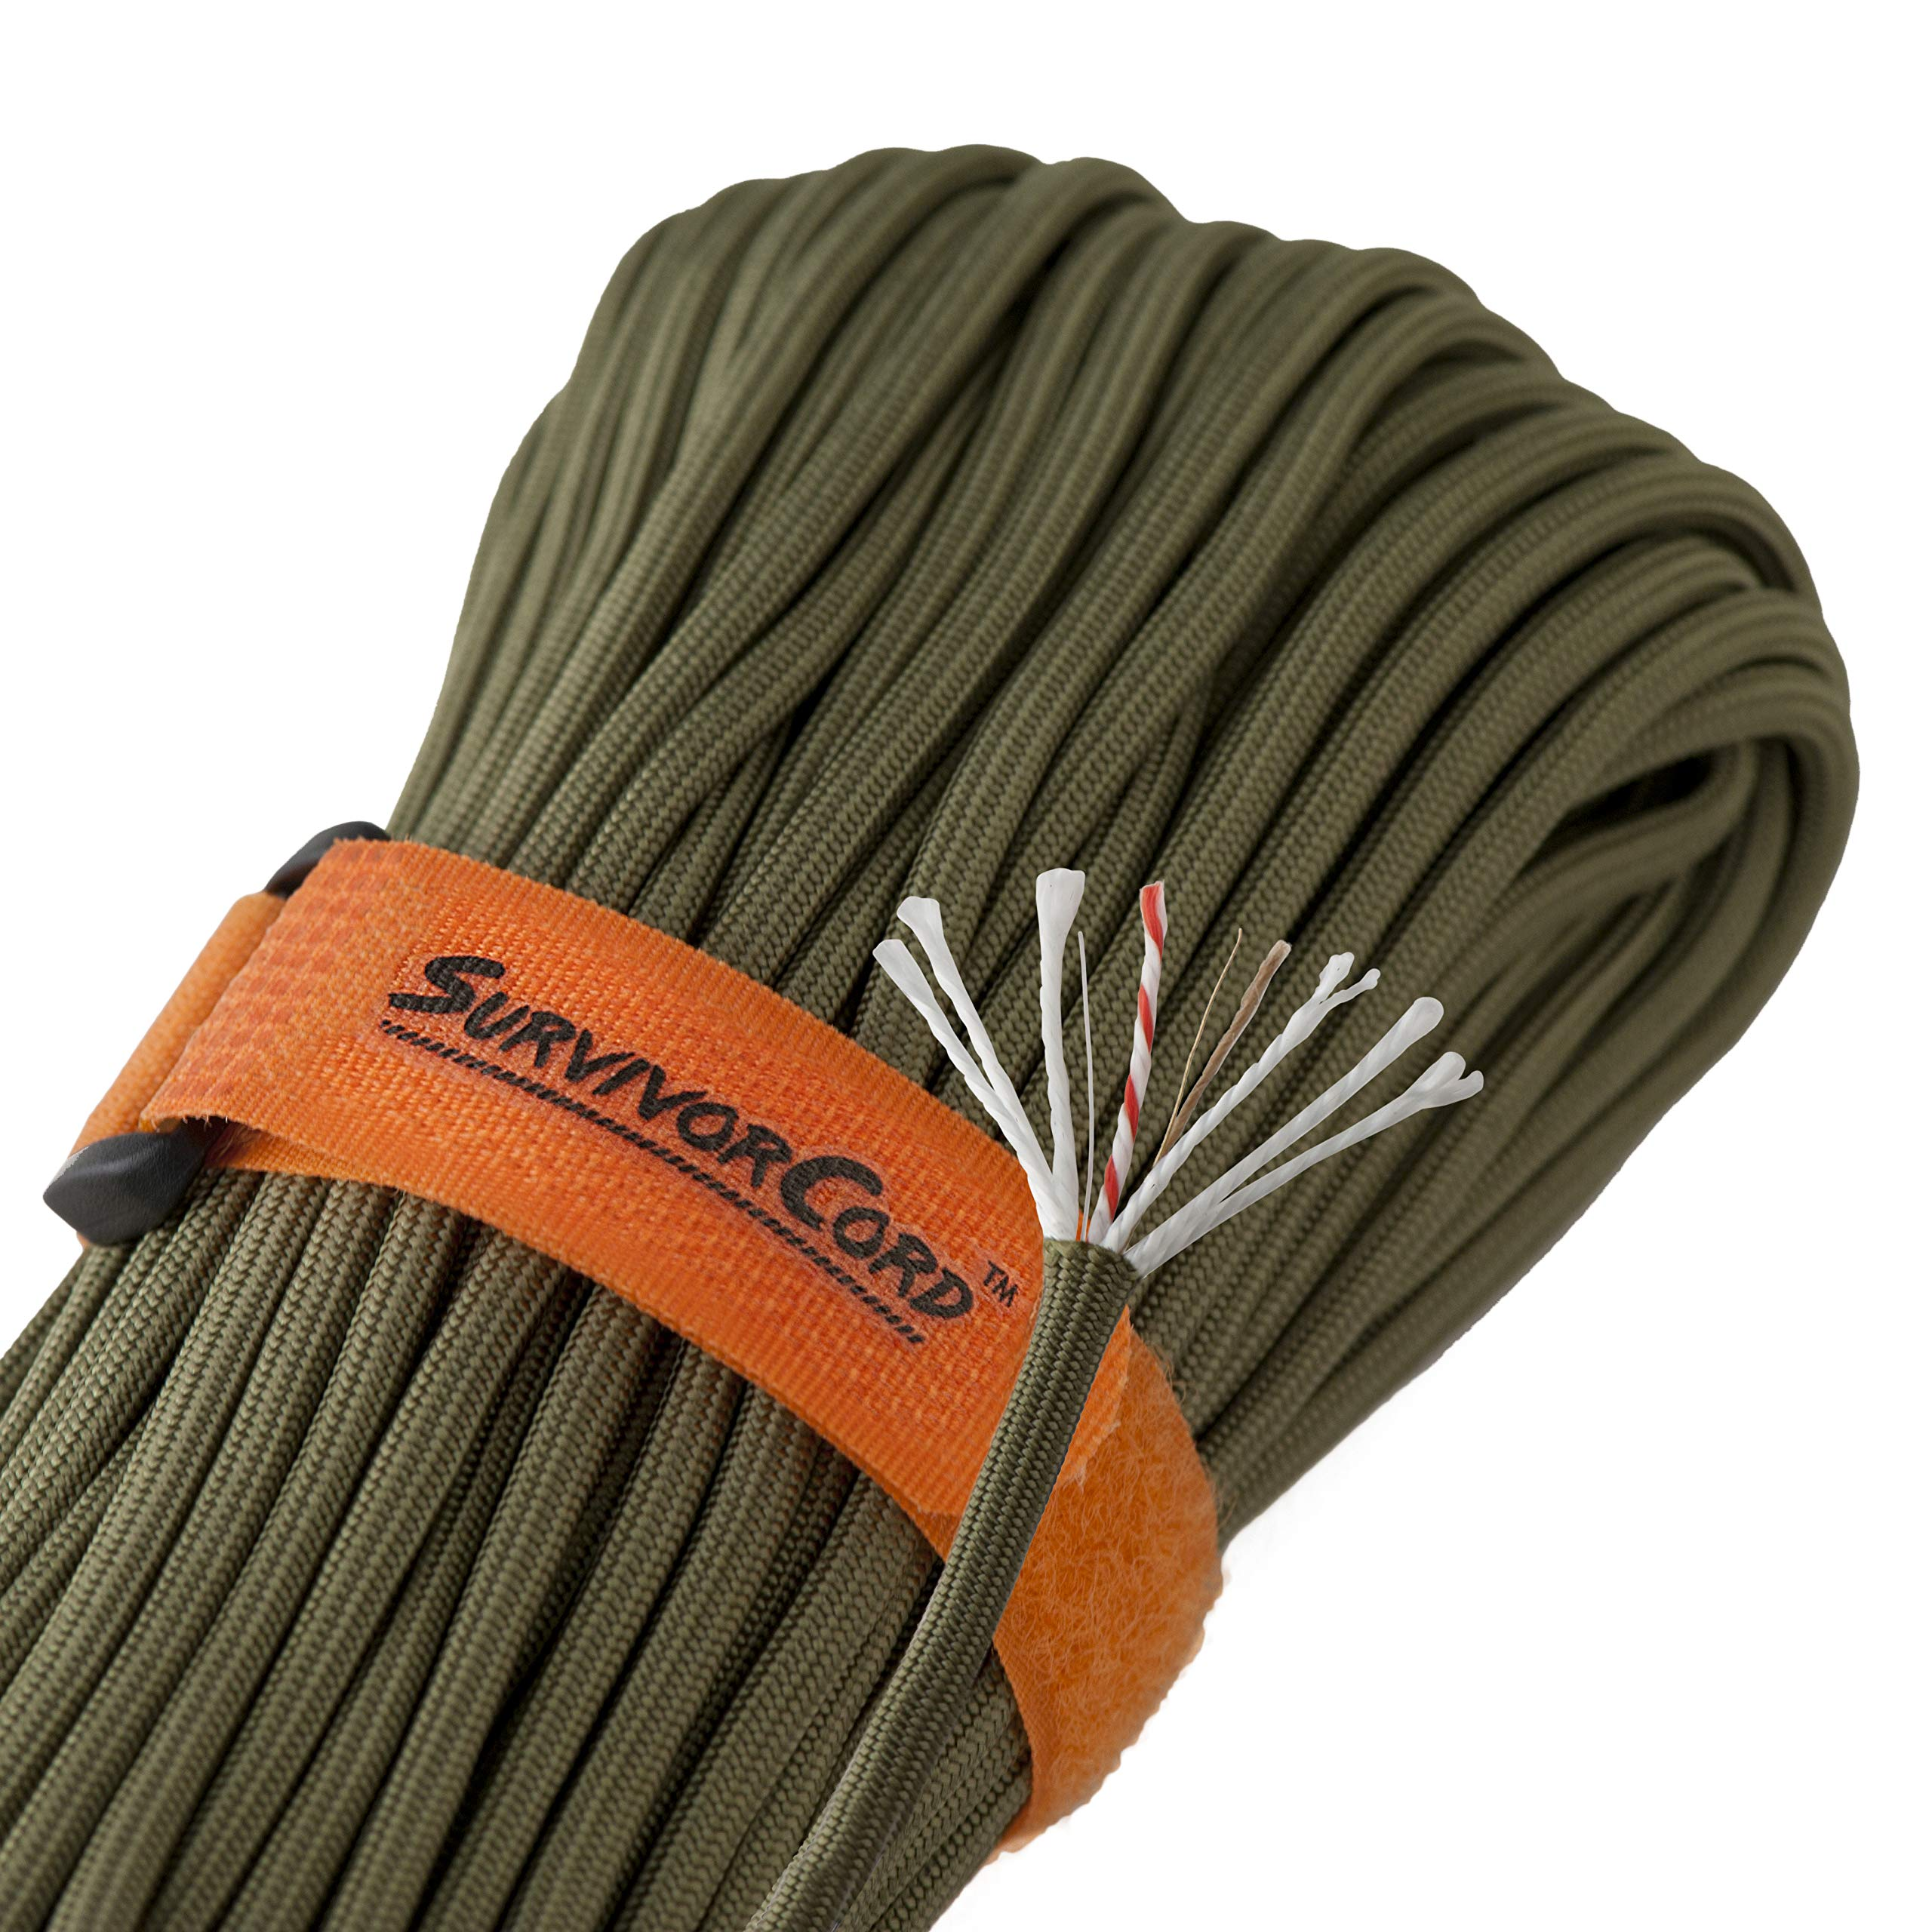 Titan SurvivorCord | Olive-DRAB | 103 Feet | Patented Military Type III 550 Paracord/Parachute Cord (3/16'' Diameter) with Integrated Fishing Line, Fire-Starter, and Utility Wire.